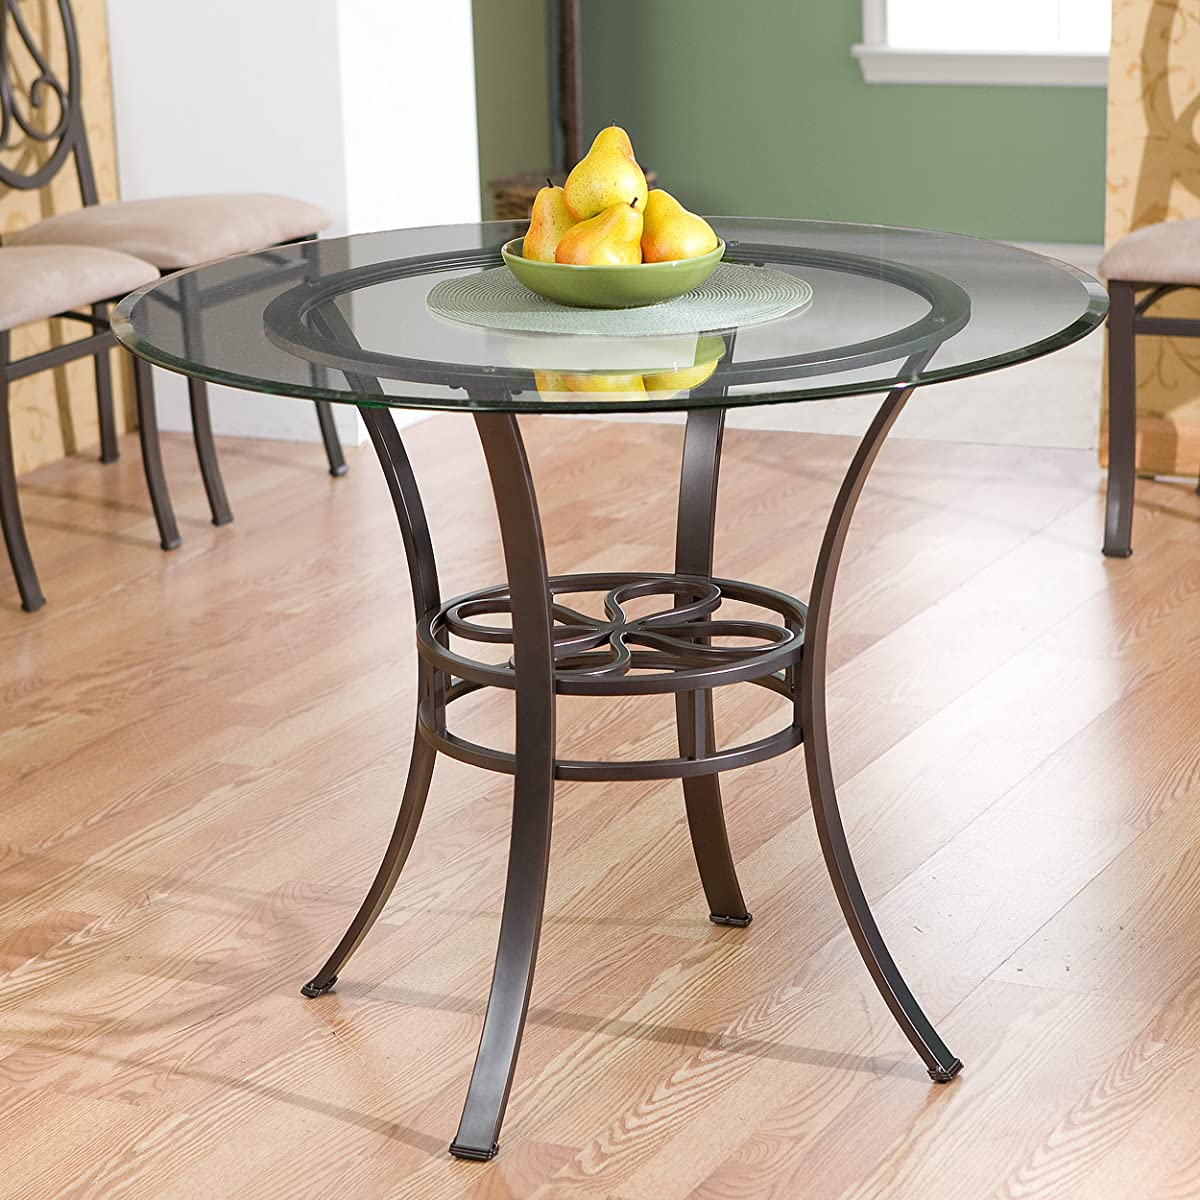 Southern Enterprises Lucianna Glass Top Dining Table, Dark Brown Finish